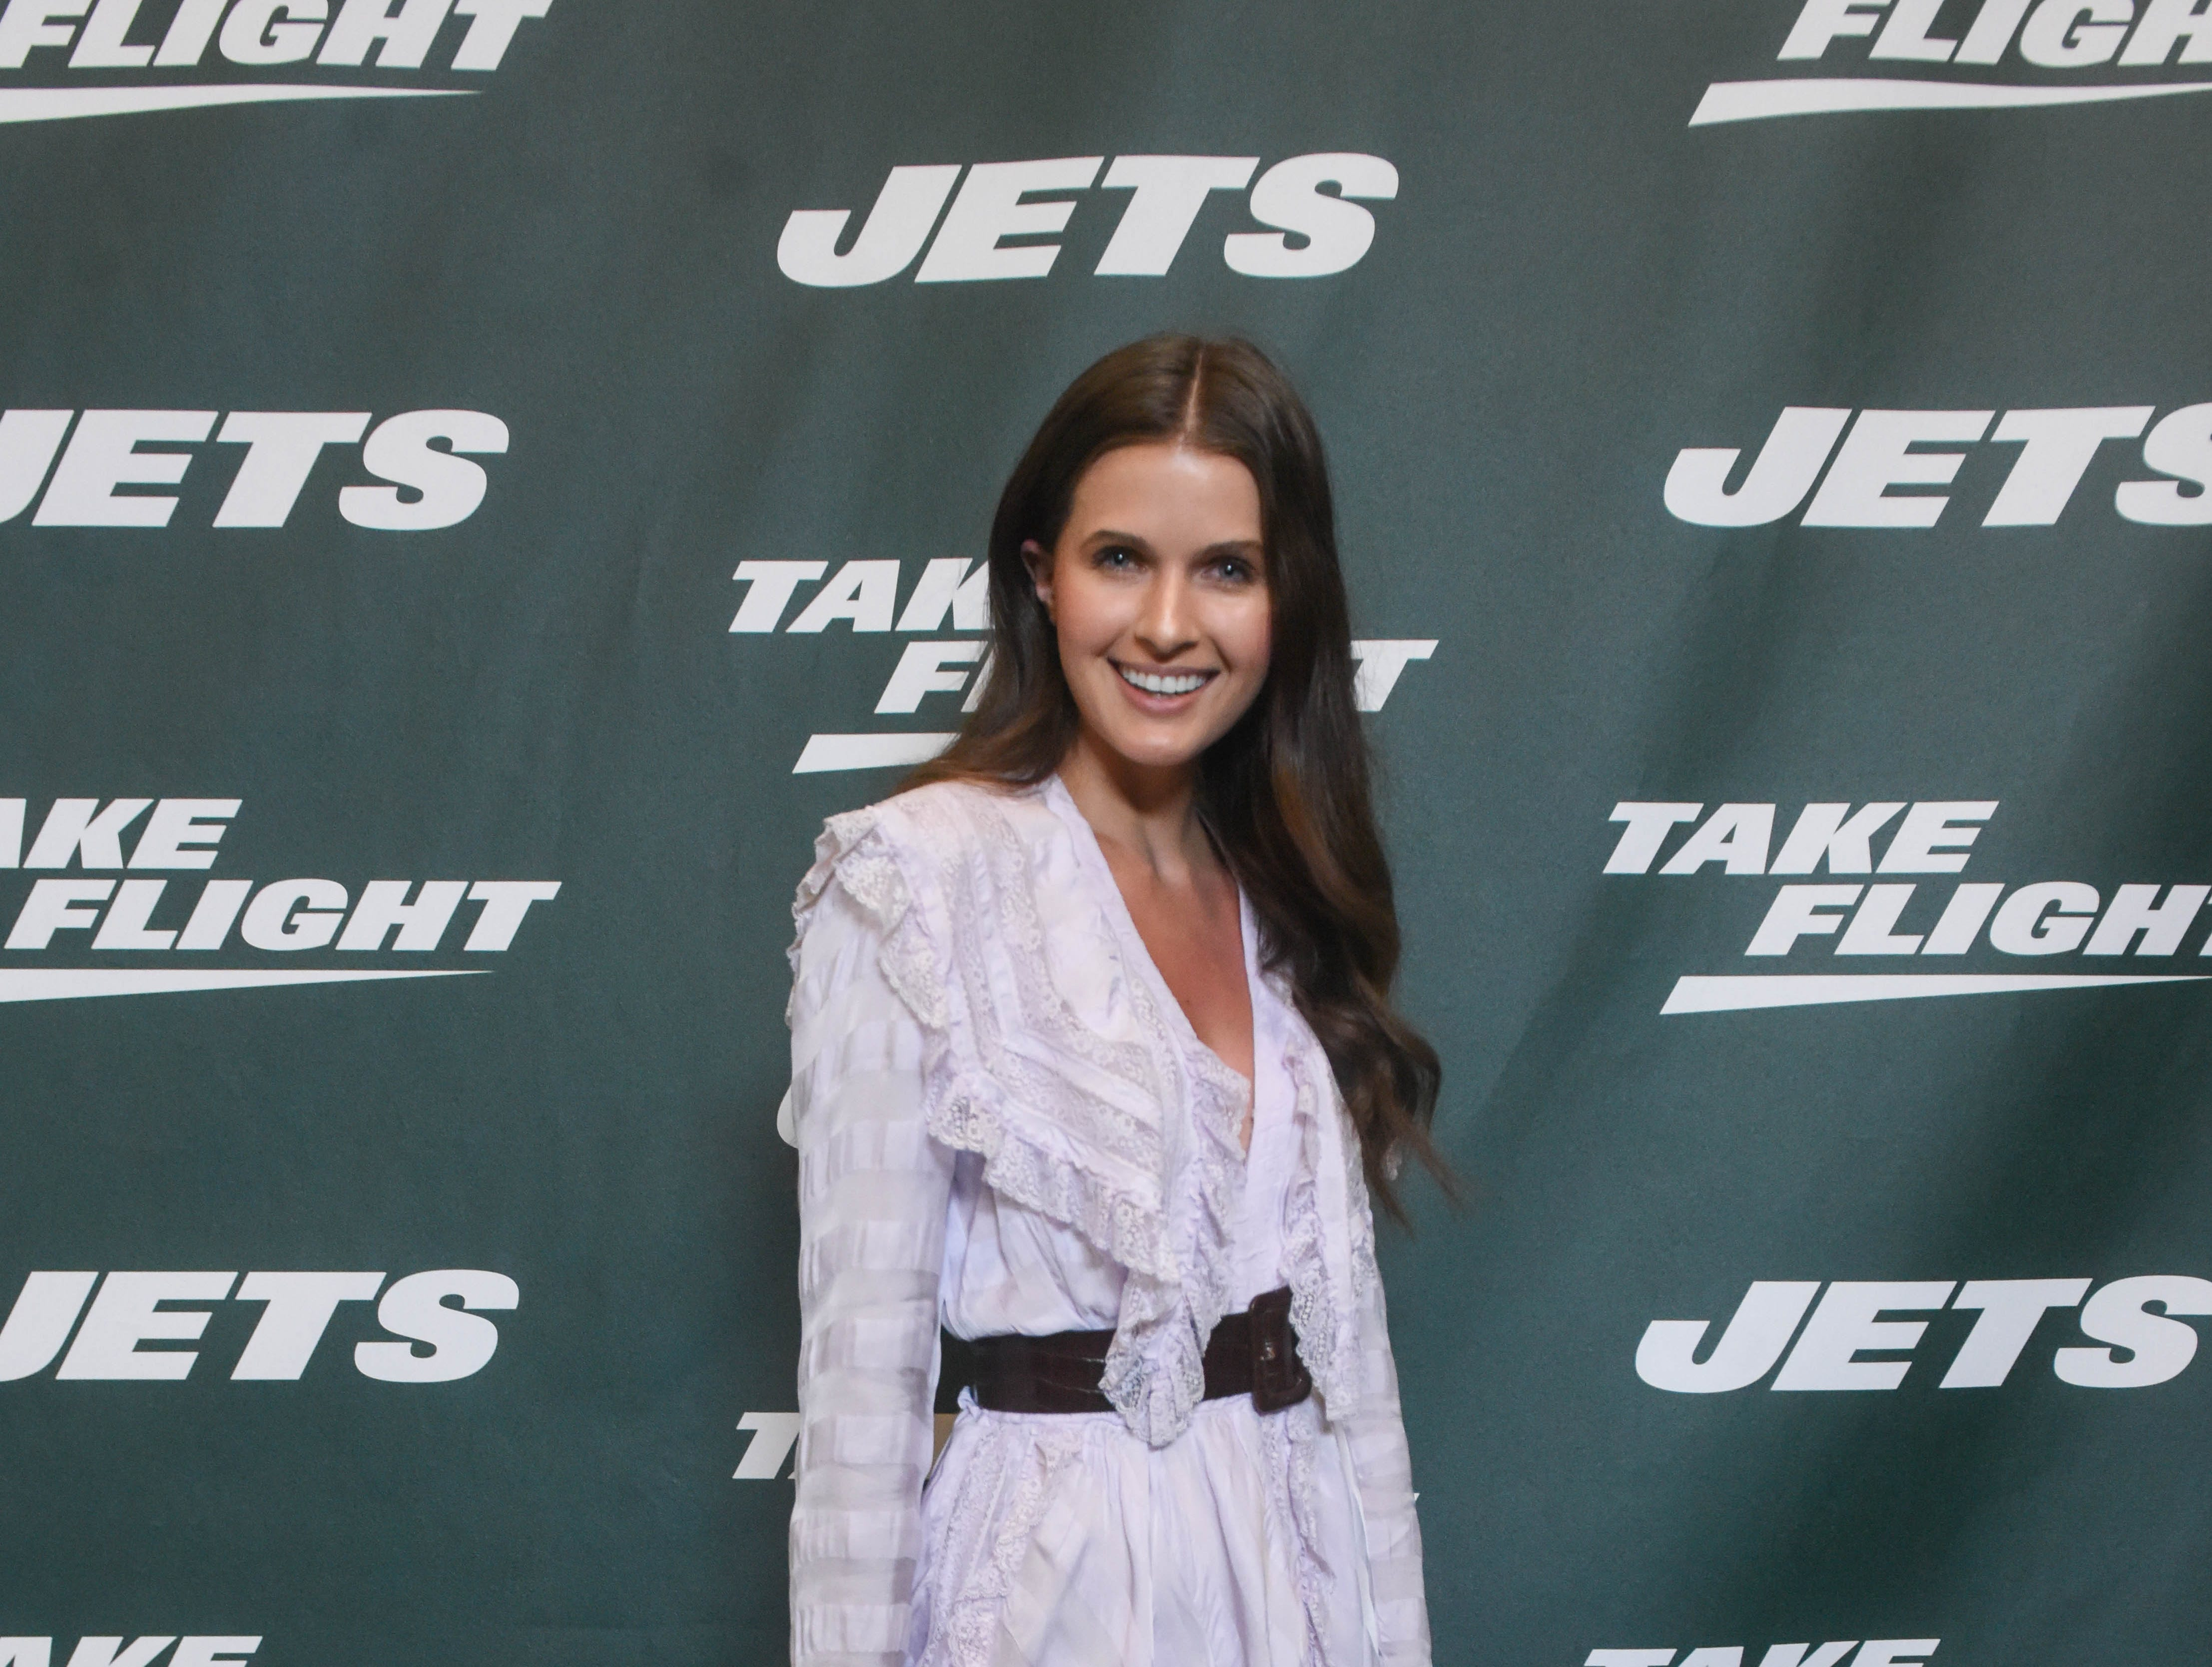 Jessica Markowski (Actress). The NY Jets unveiled their new football uniforms with an event hosted by JB Smoove at Gotham Hall in New York. 04/05/2019